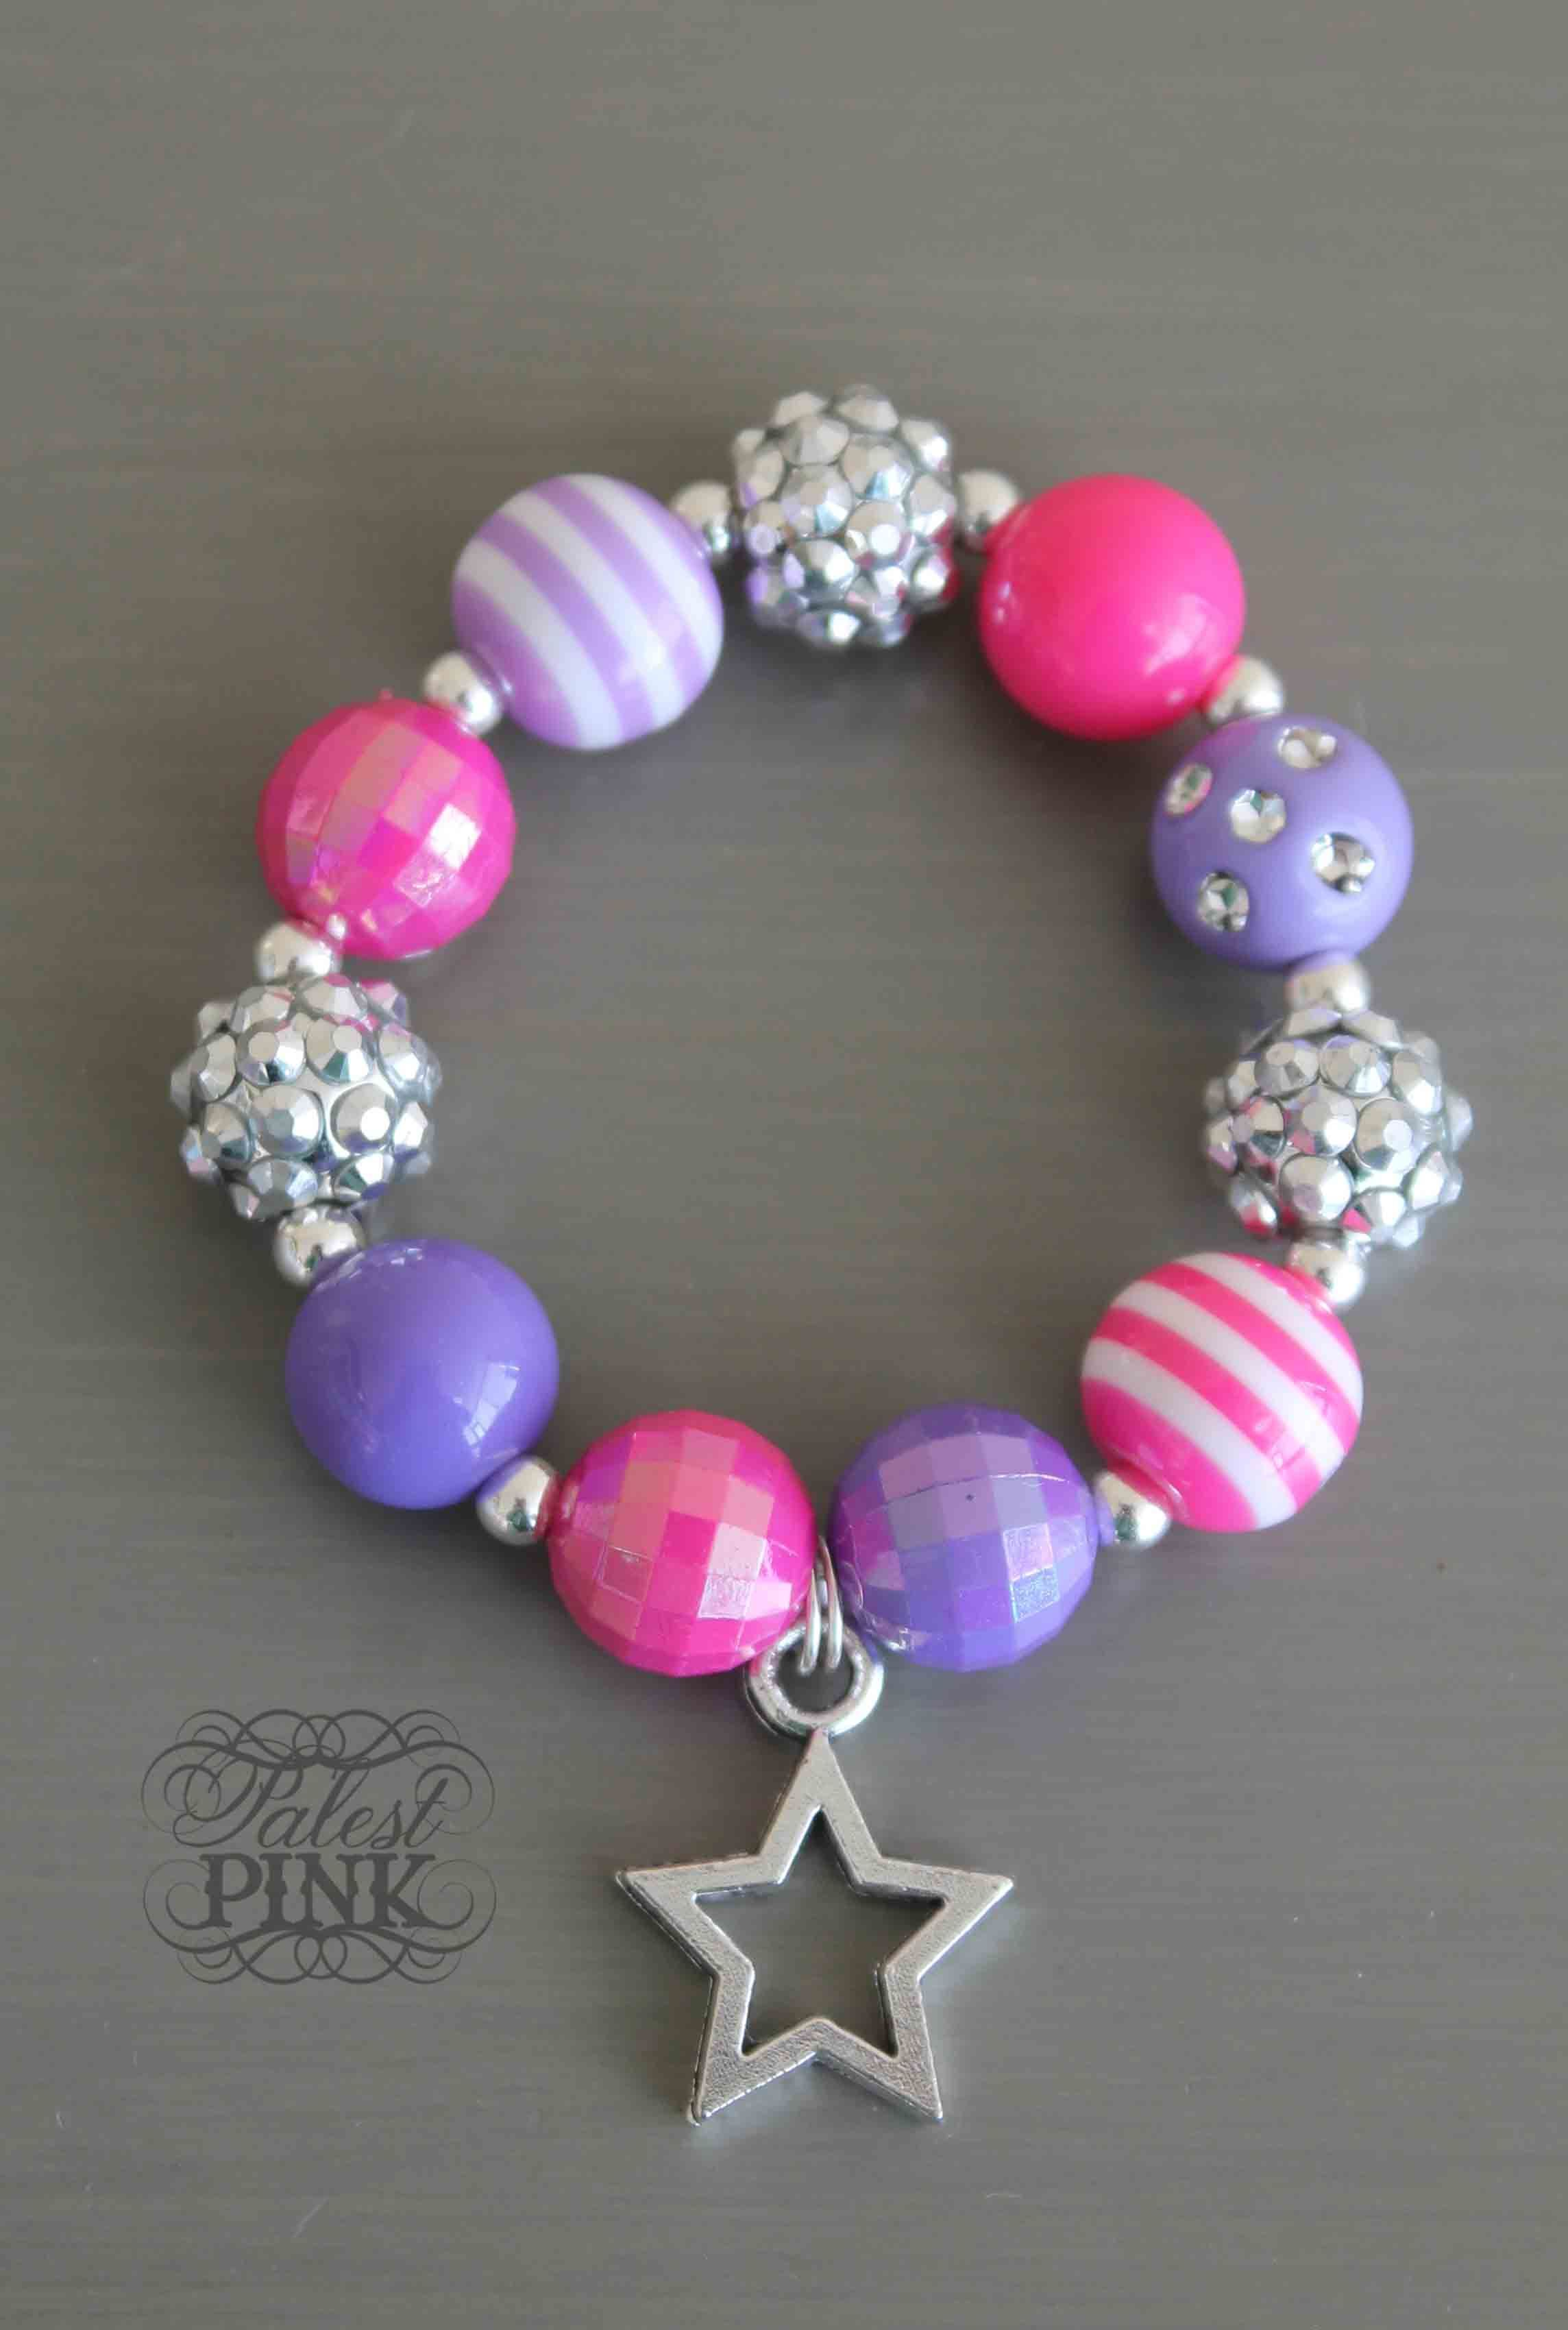 American girl bracelet made by palest pink facebook